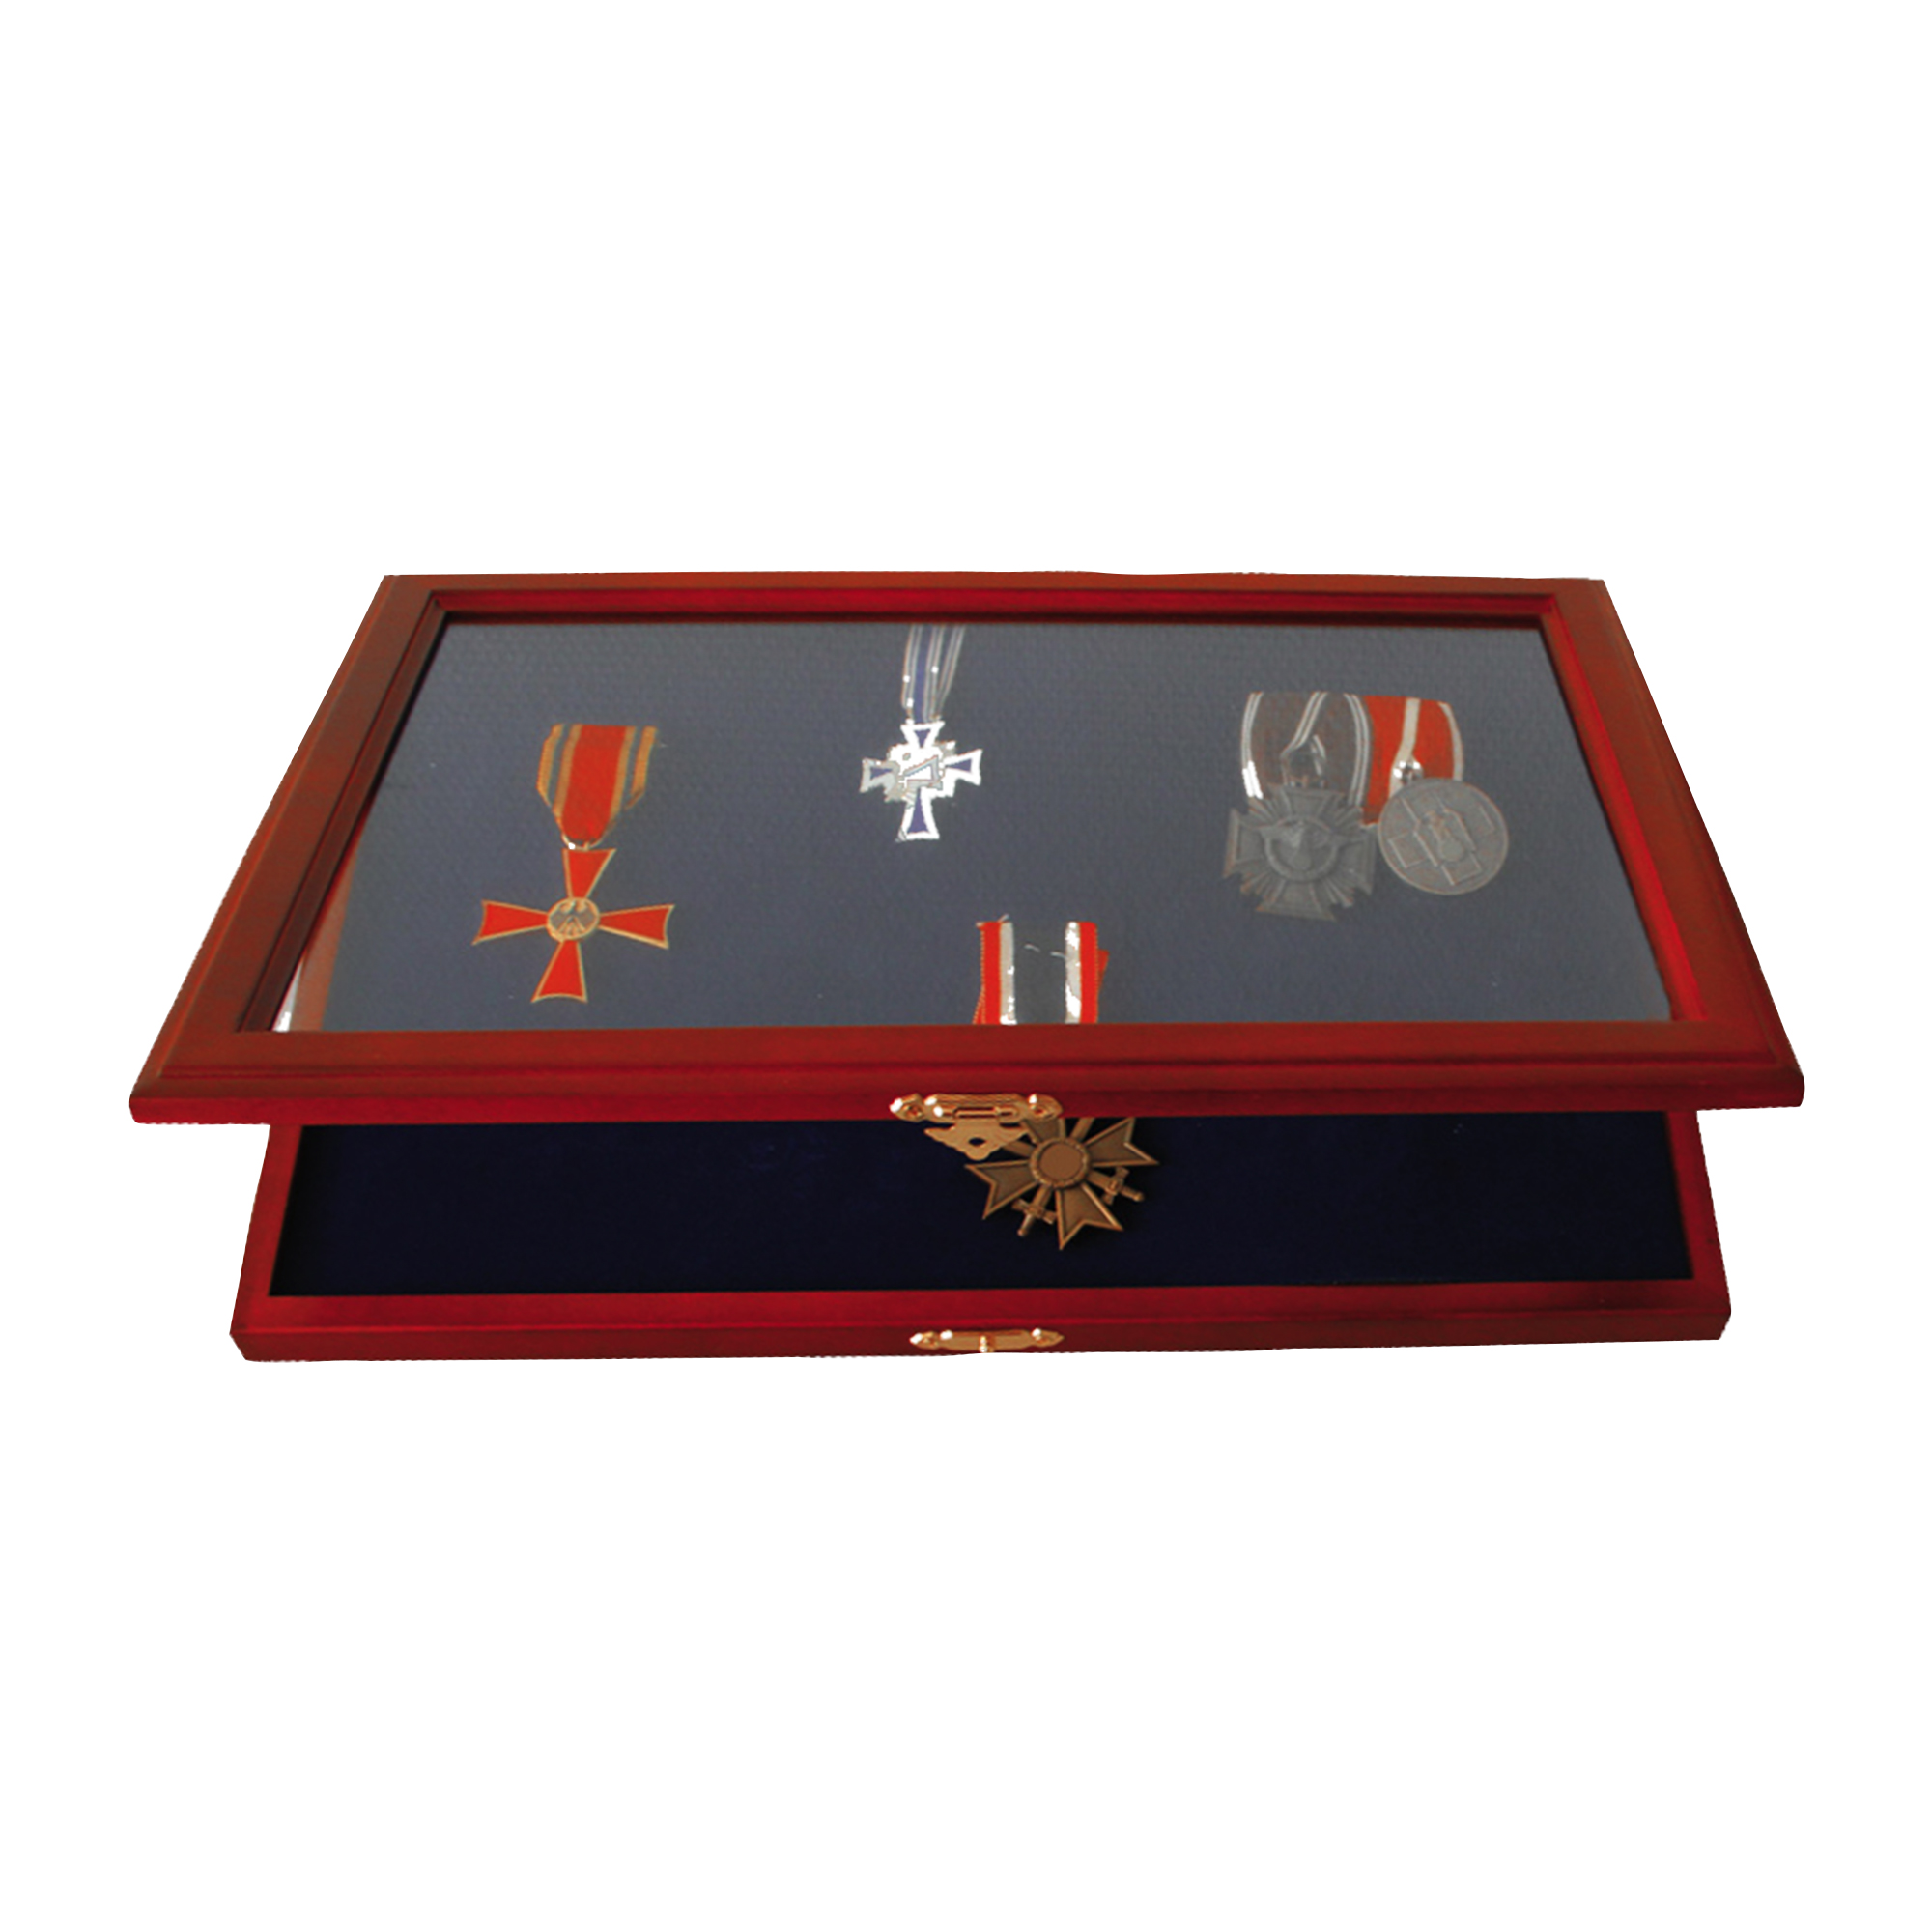 Display Case For Medals Decorations And Pins Wooden